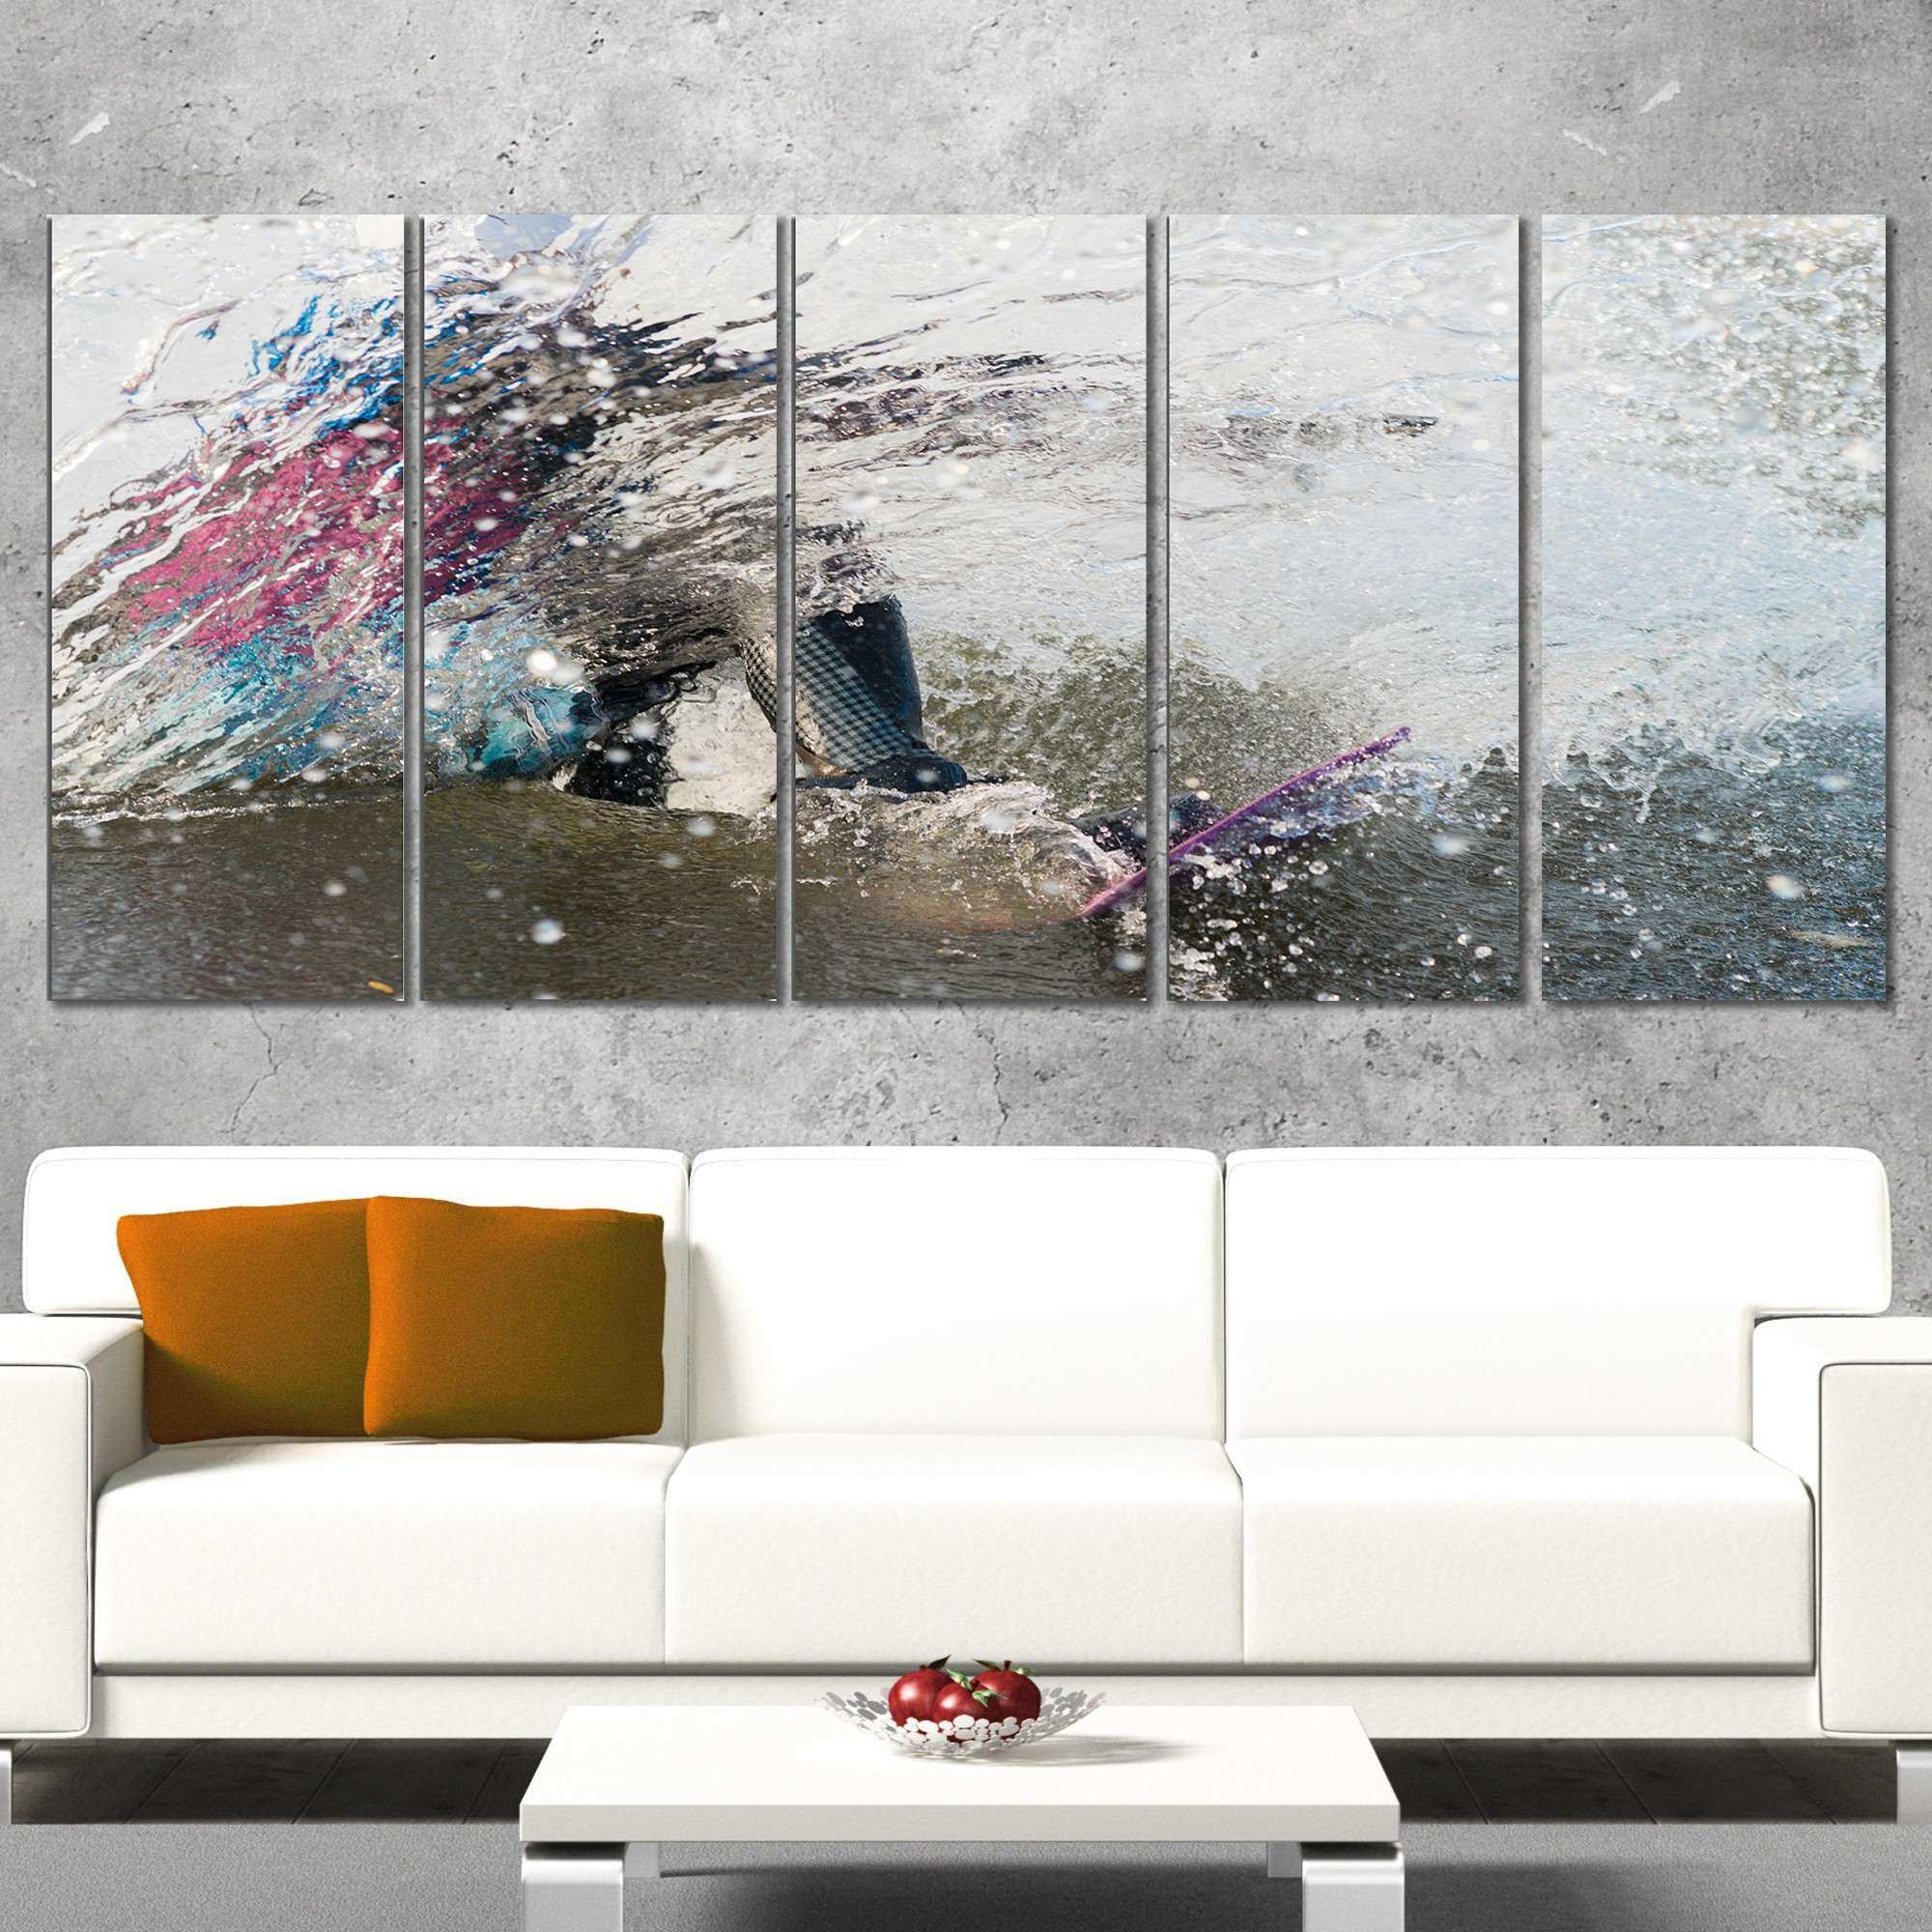 DesignArt Guy on a Wakeboard 5 Piece Wall Art on Wrapped